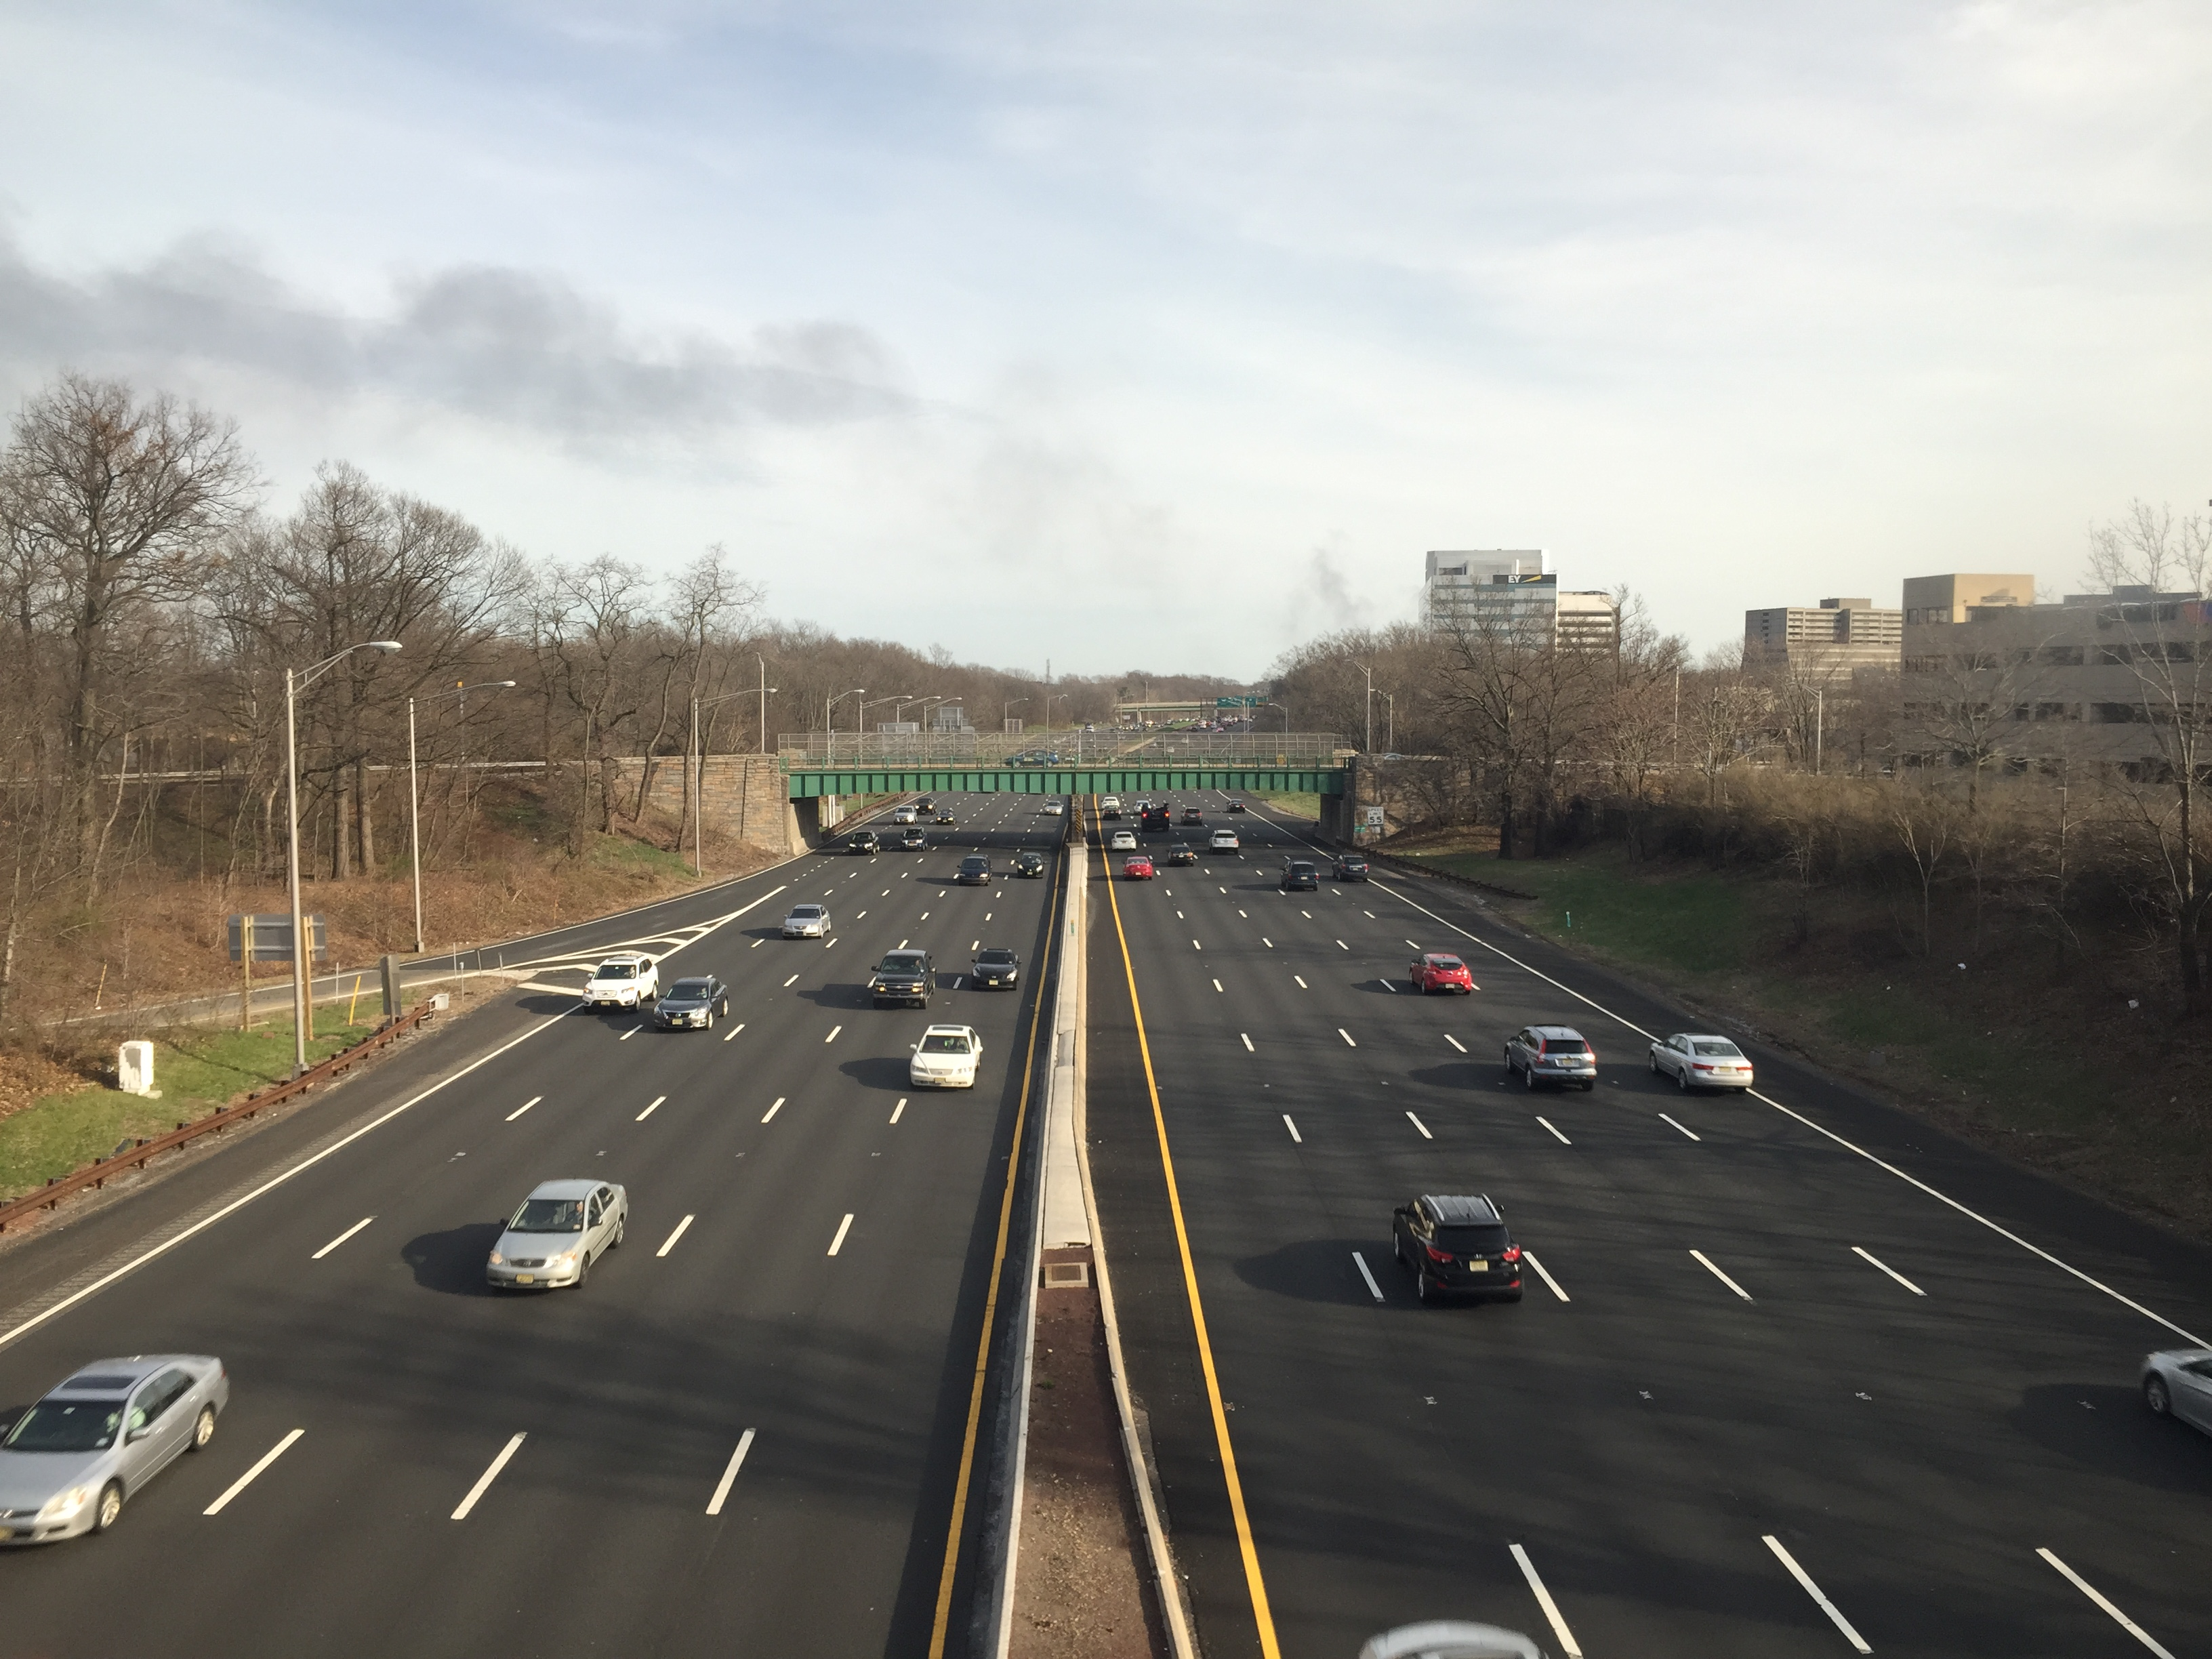 File 2015 04 13 17 20 31 View South Along The Garden State Parkway From The Northeast Corridor